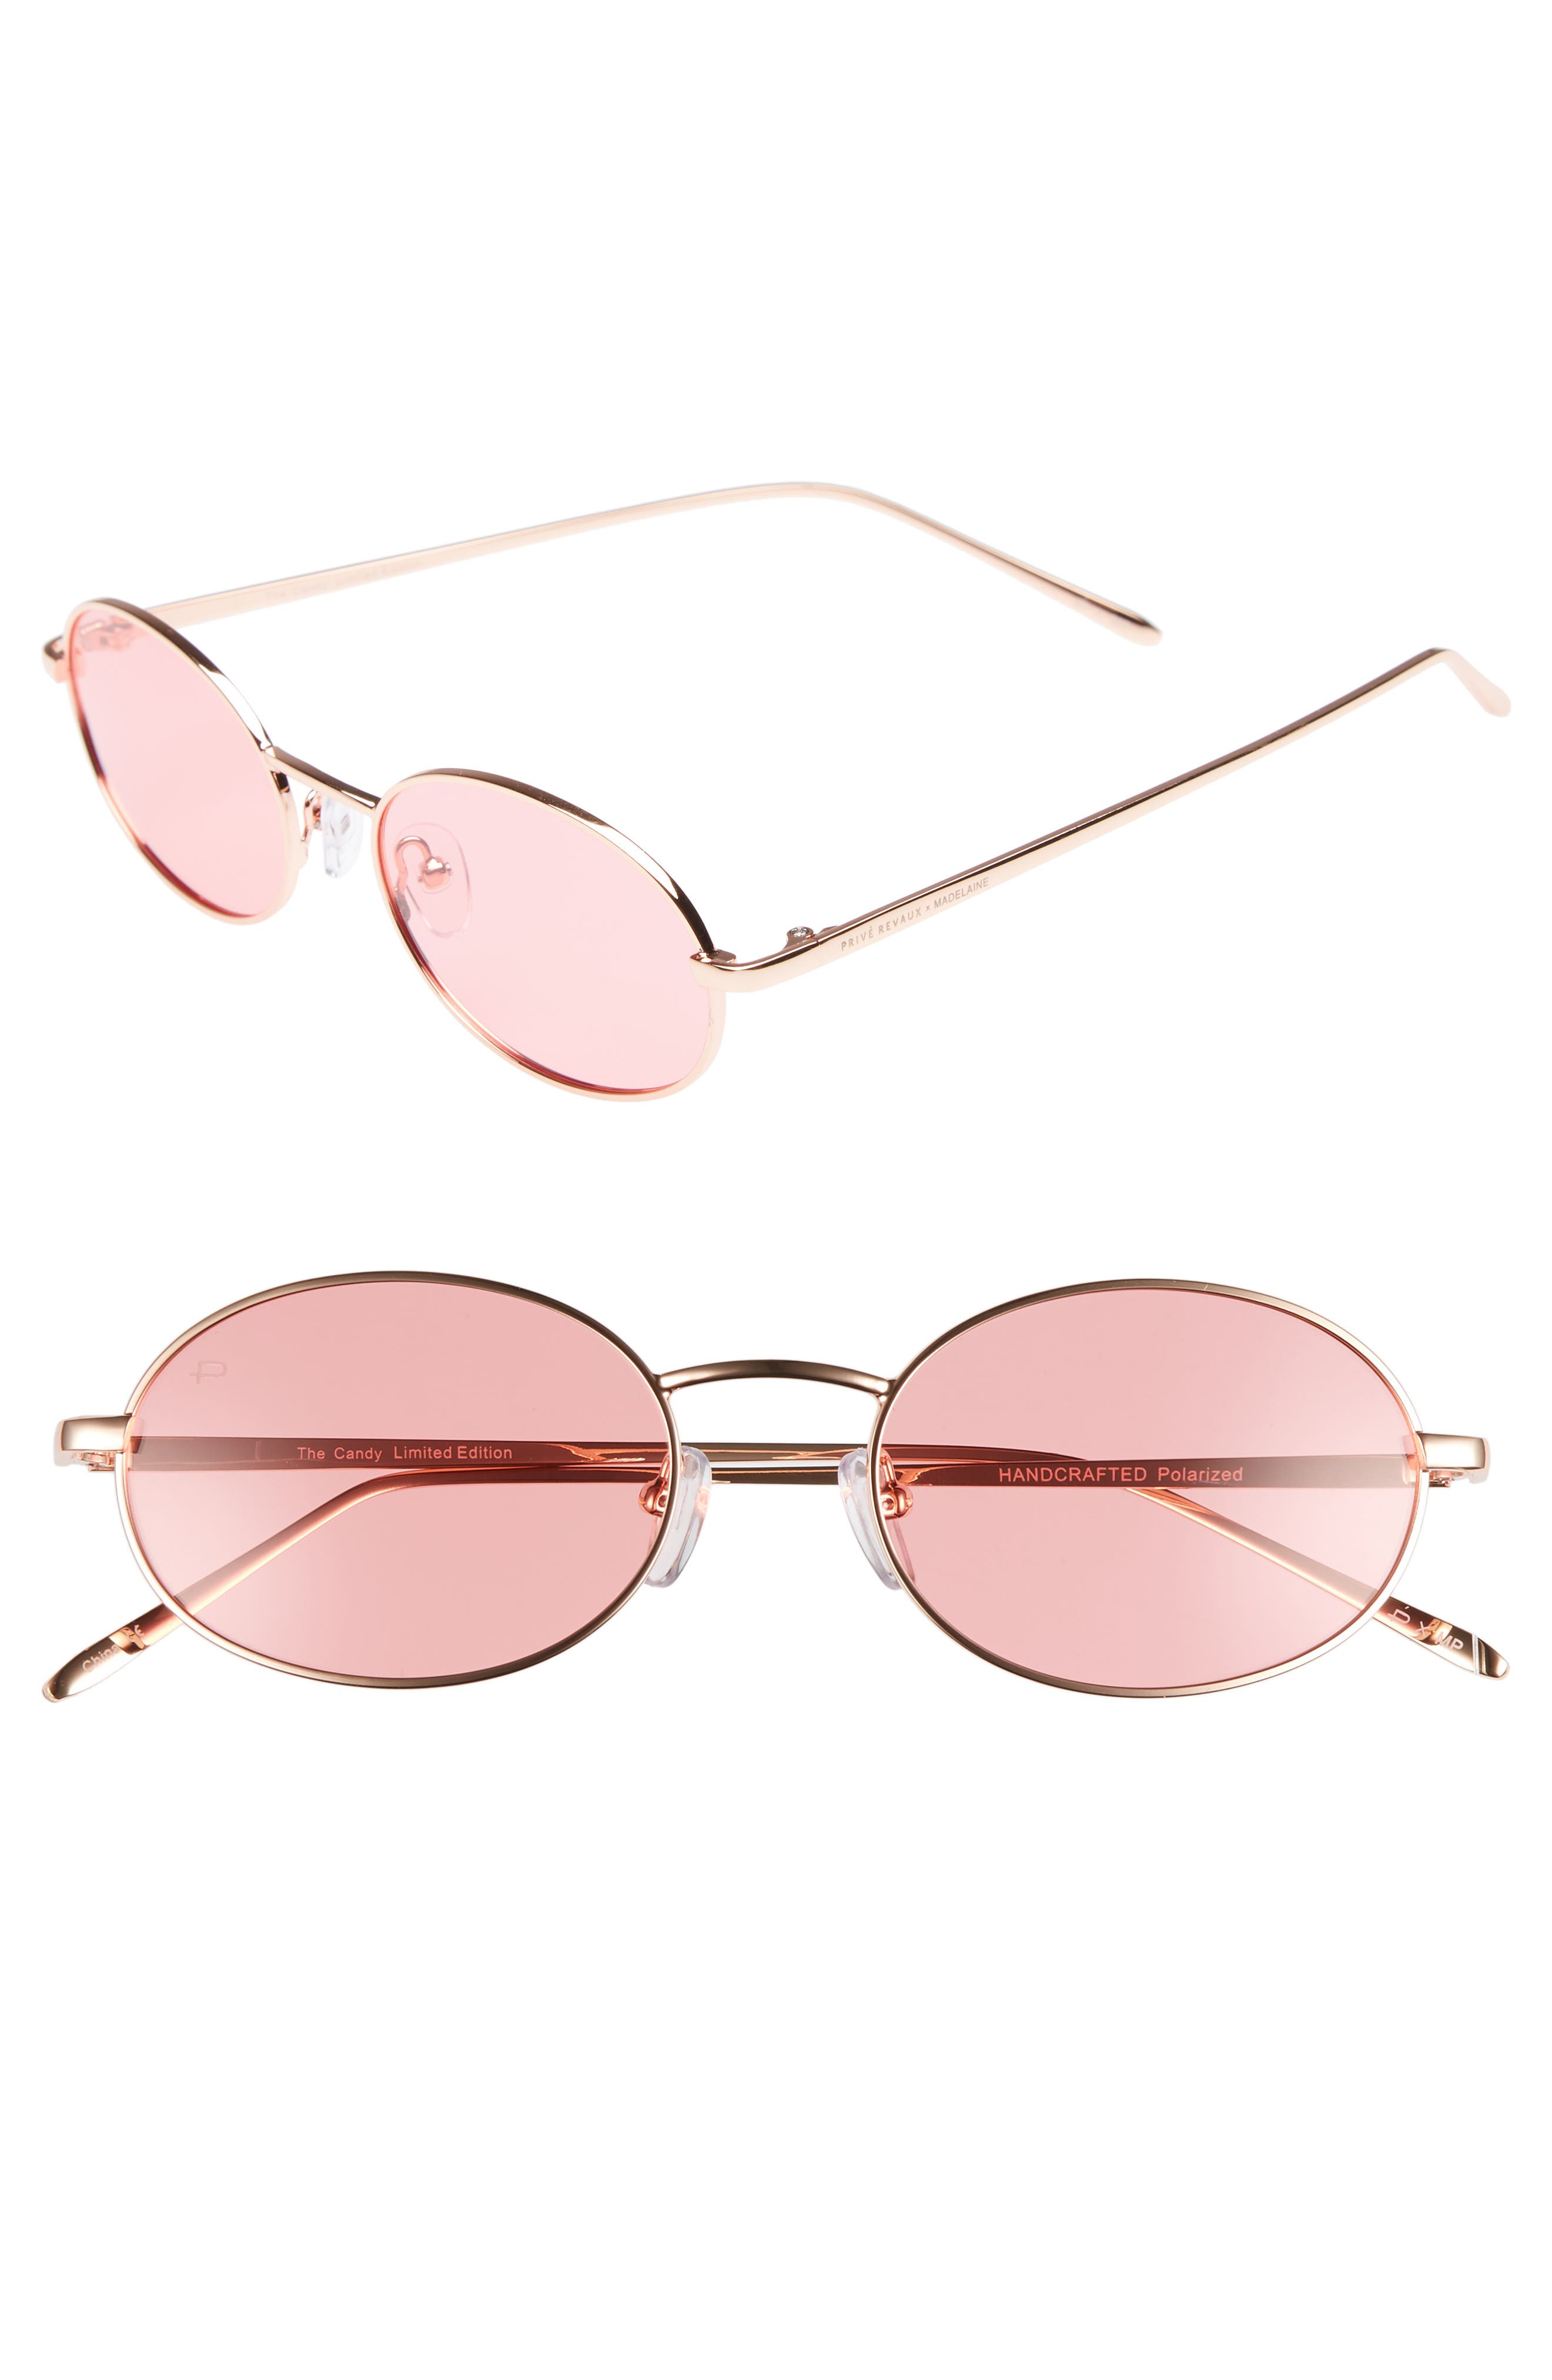 Privé Revaux x Madelaine Petsch The Candy 50mm Round Sunglasses